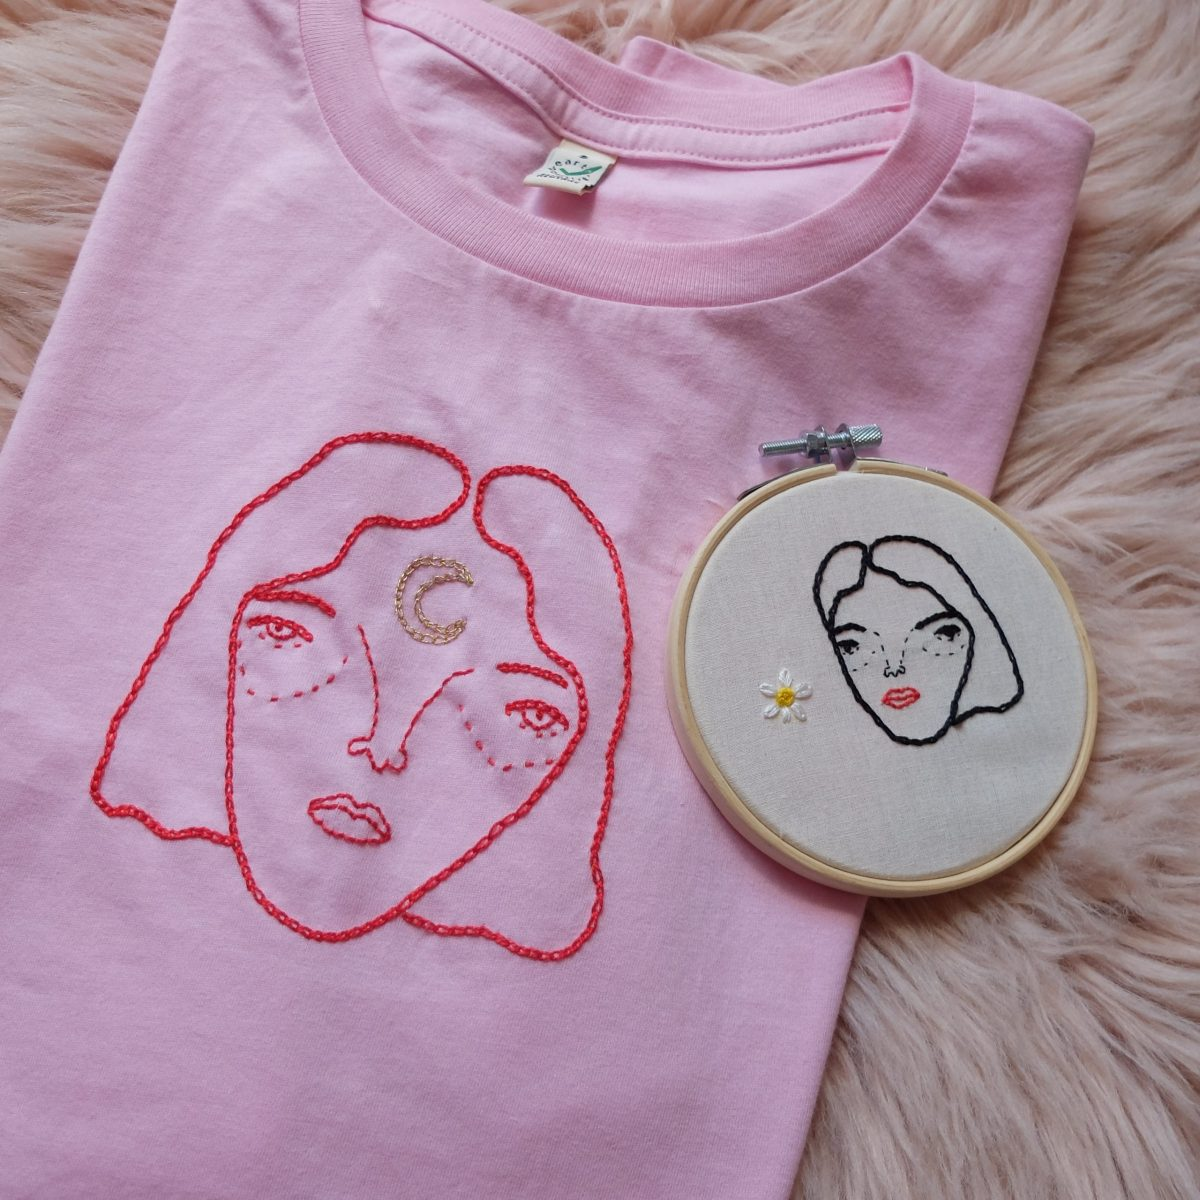 moon face tshirt red embroidery stitches